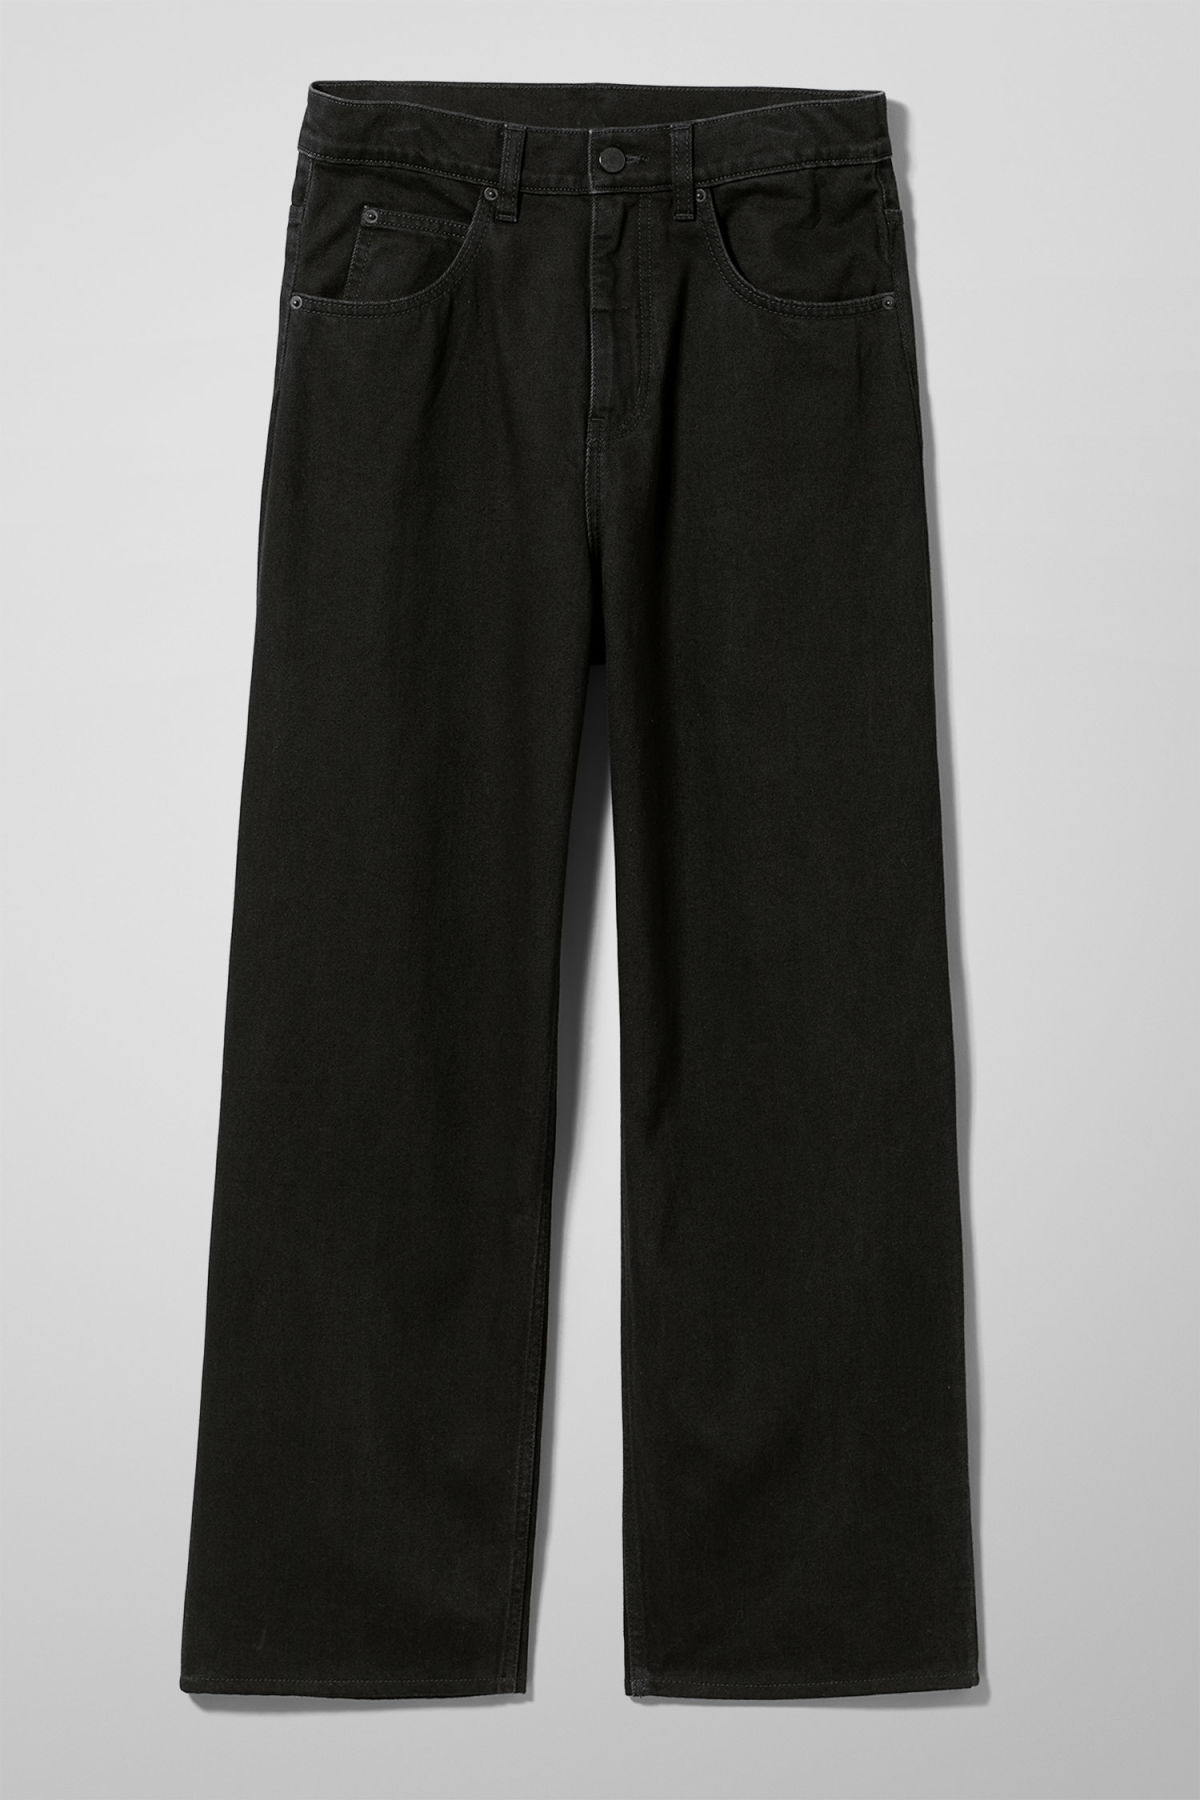 Front image of Weekday bez black jeans in black